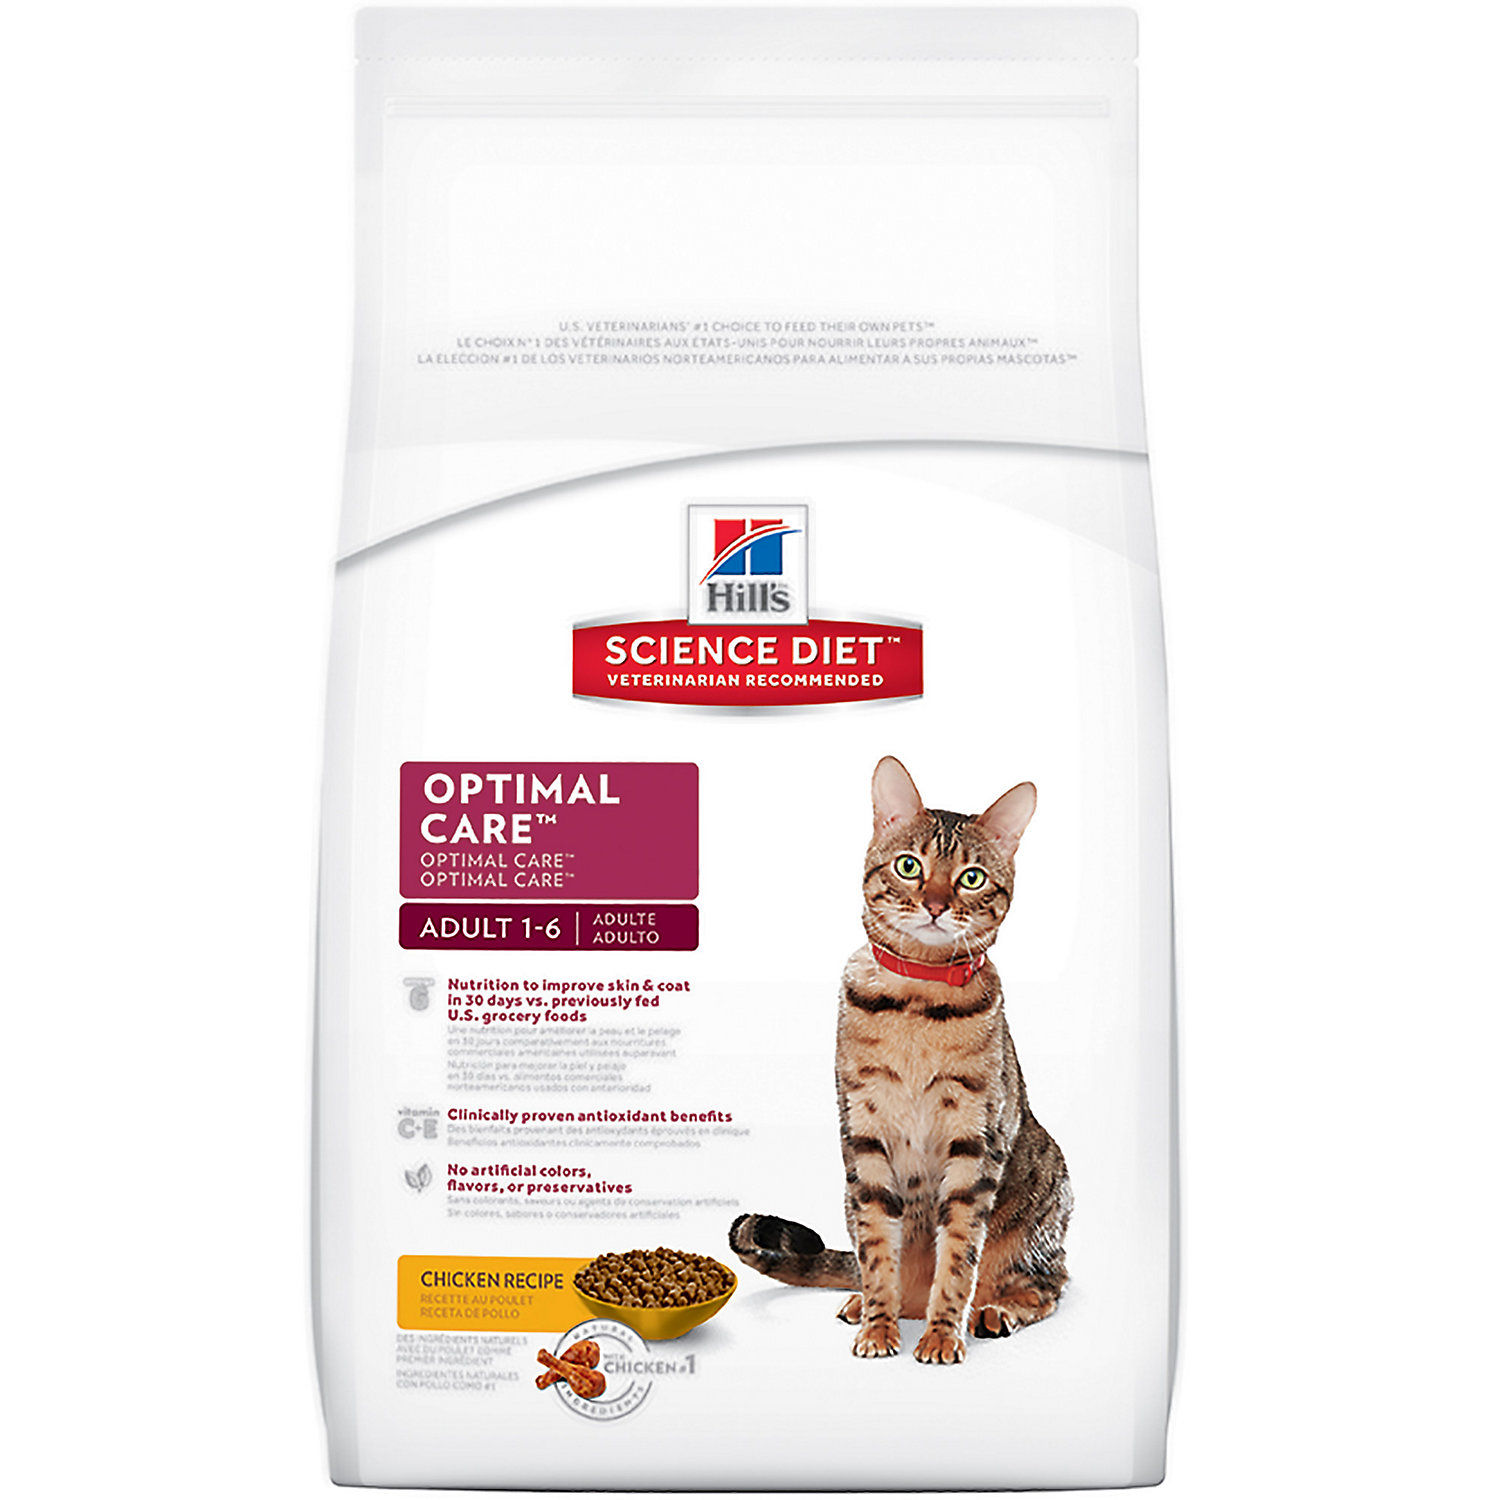 Hills Science Diet Optimal Care Chicken Recipe Adult Dry Cat Food 7 Lbs.